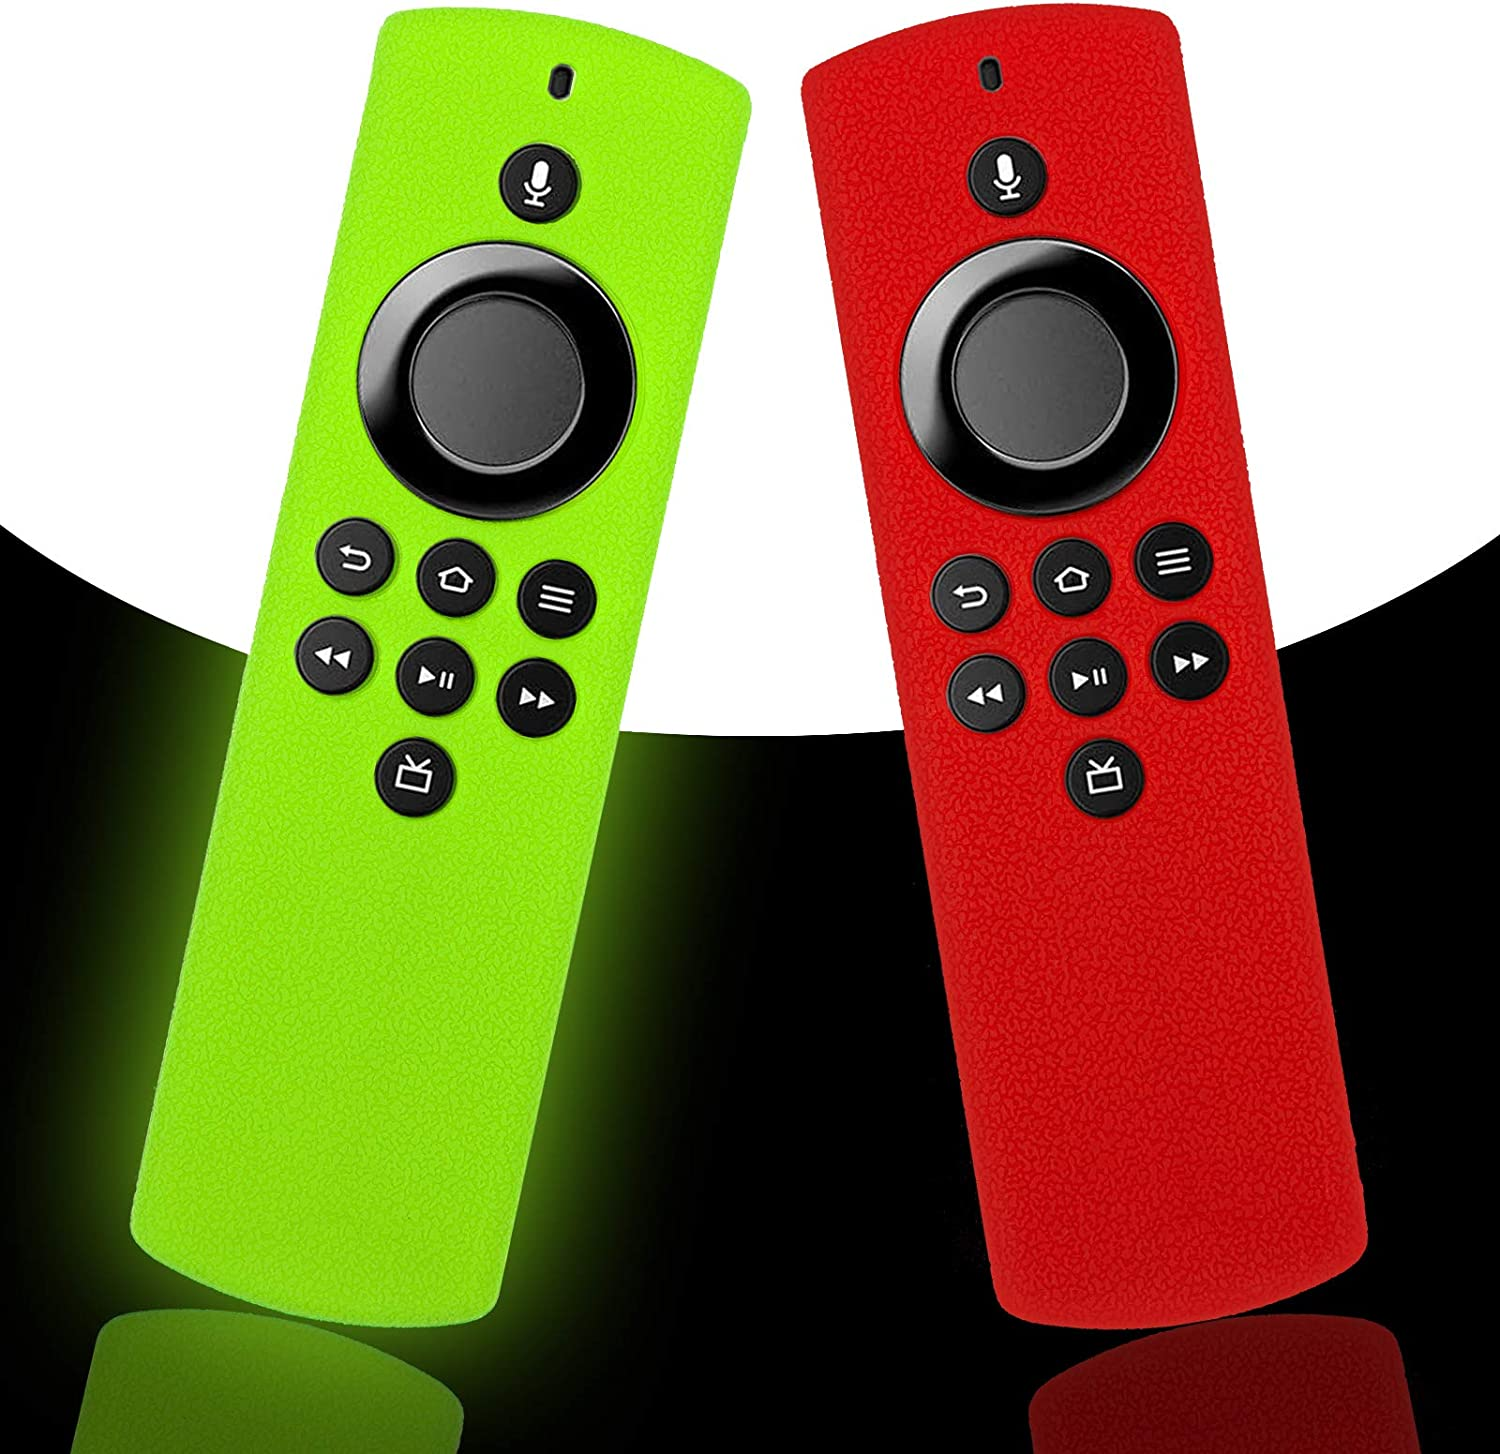 2-Pack Glow Remote Cover Replacement for Voi In stock TV Lite Arlington Mall Alexa Stick